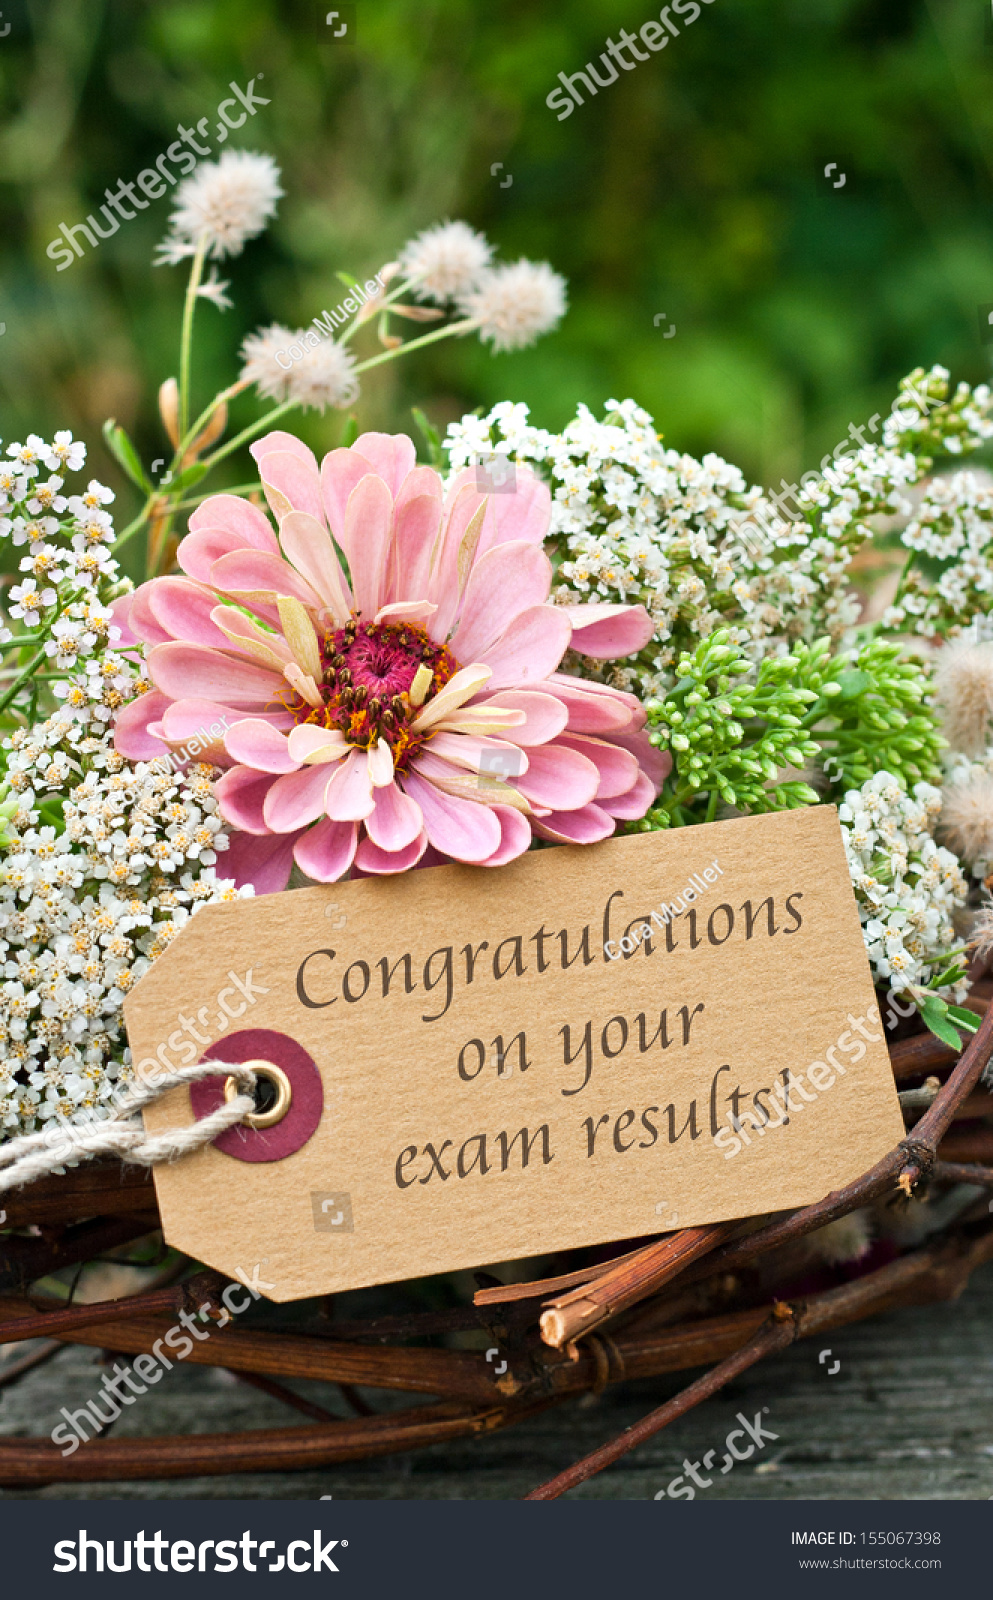 Flowers Card Examcongratulation On Your Exam Photo 155067398 – Exam Best Wishes Cards